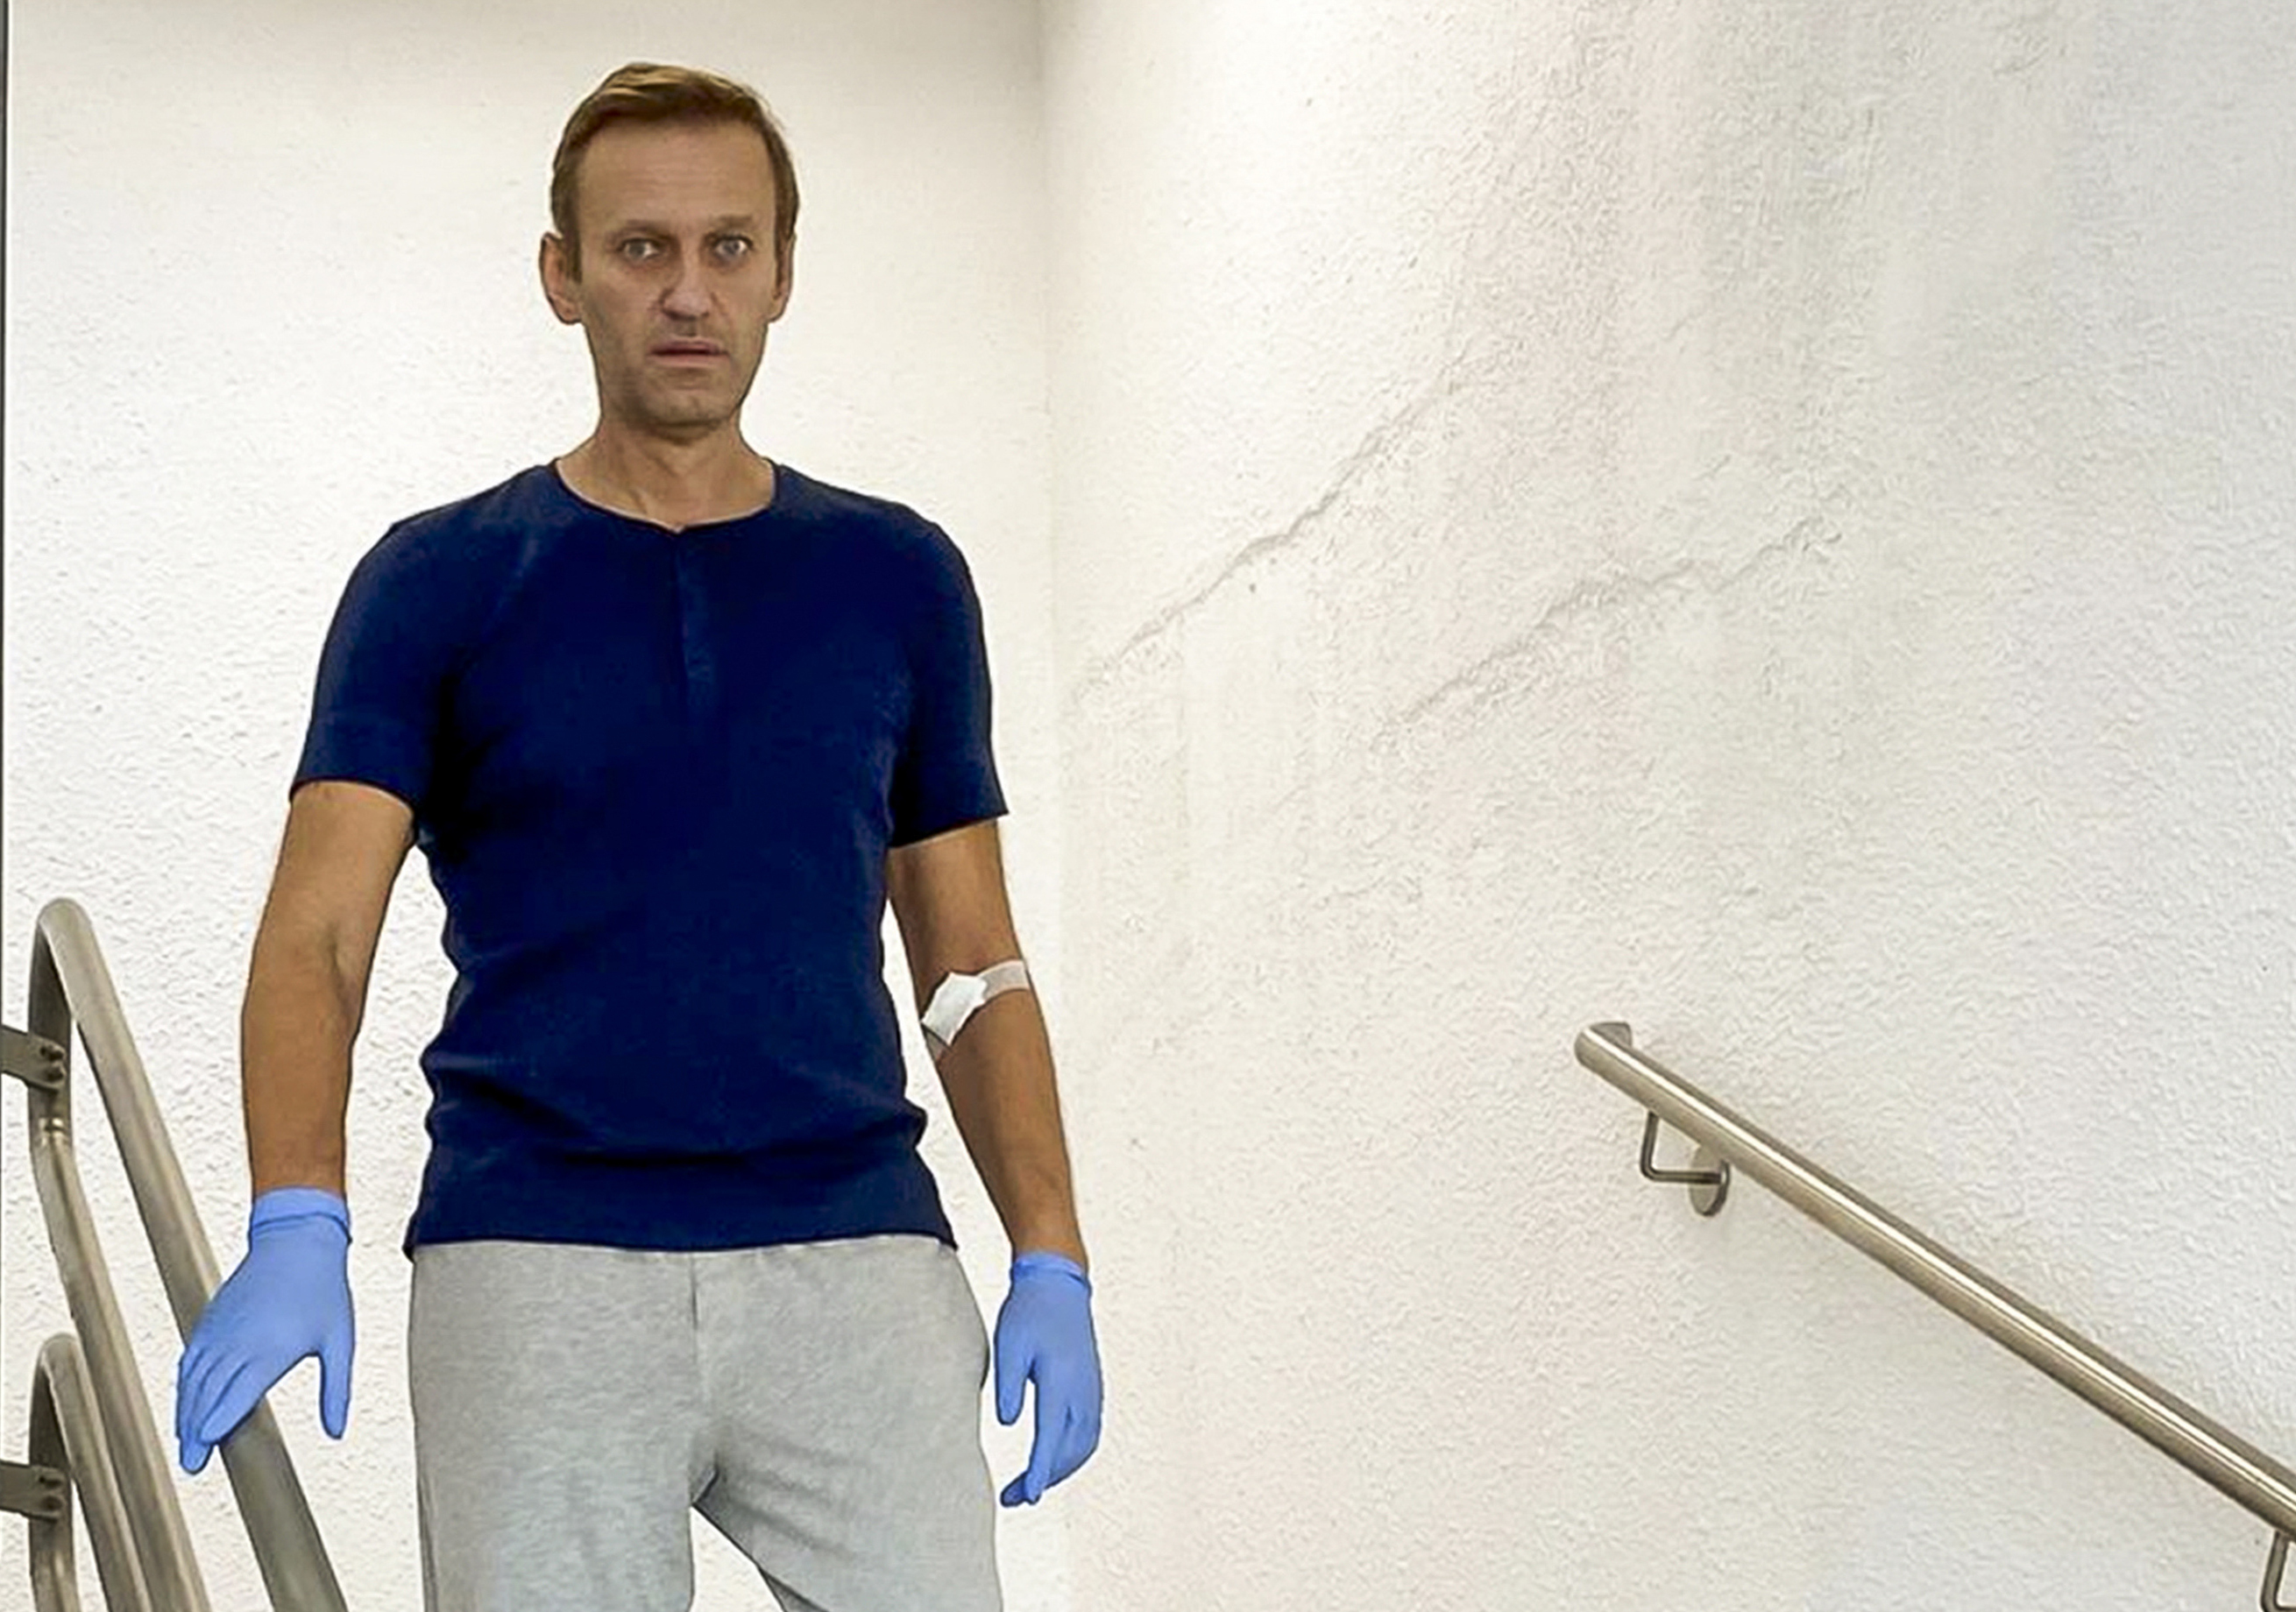 In this photo taken from a video published by Russian opposition leader Alexei Navalny on his instagram account, Russian opposition leader Alexei Navalny walks down stairs in a hospital in Berlin, Germany, Saturday, Sept. 19, 2020. The German hospital treating Russian opposition leader Alexei Navalny for poisoning says his condition improved enough for him to be released from the facility. The Charite hospital in Berlin said Wednesday Sept. 23, 2020 that after 32 days in care, Navalny's condition  improved sufficiently for him to be discharged from acute inpatient care.